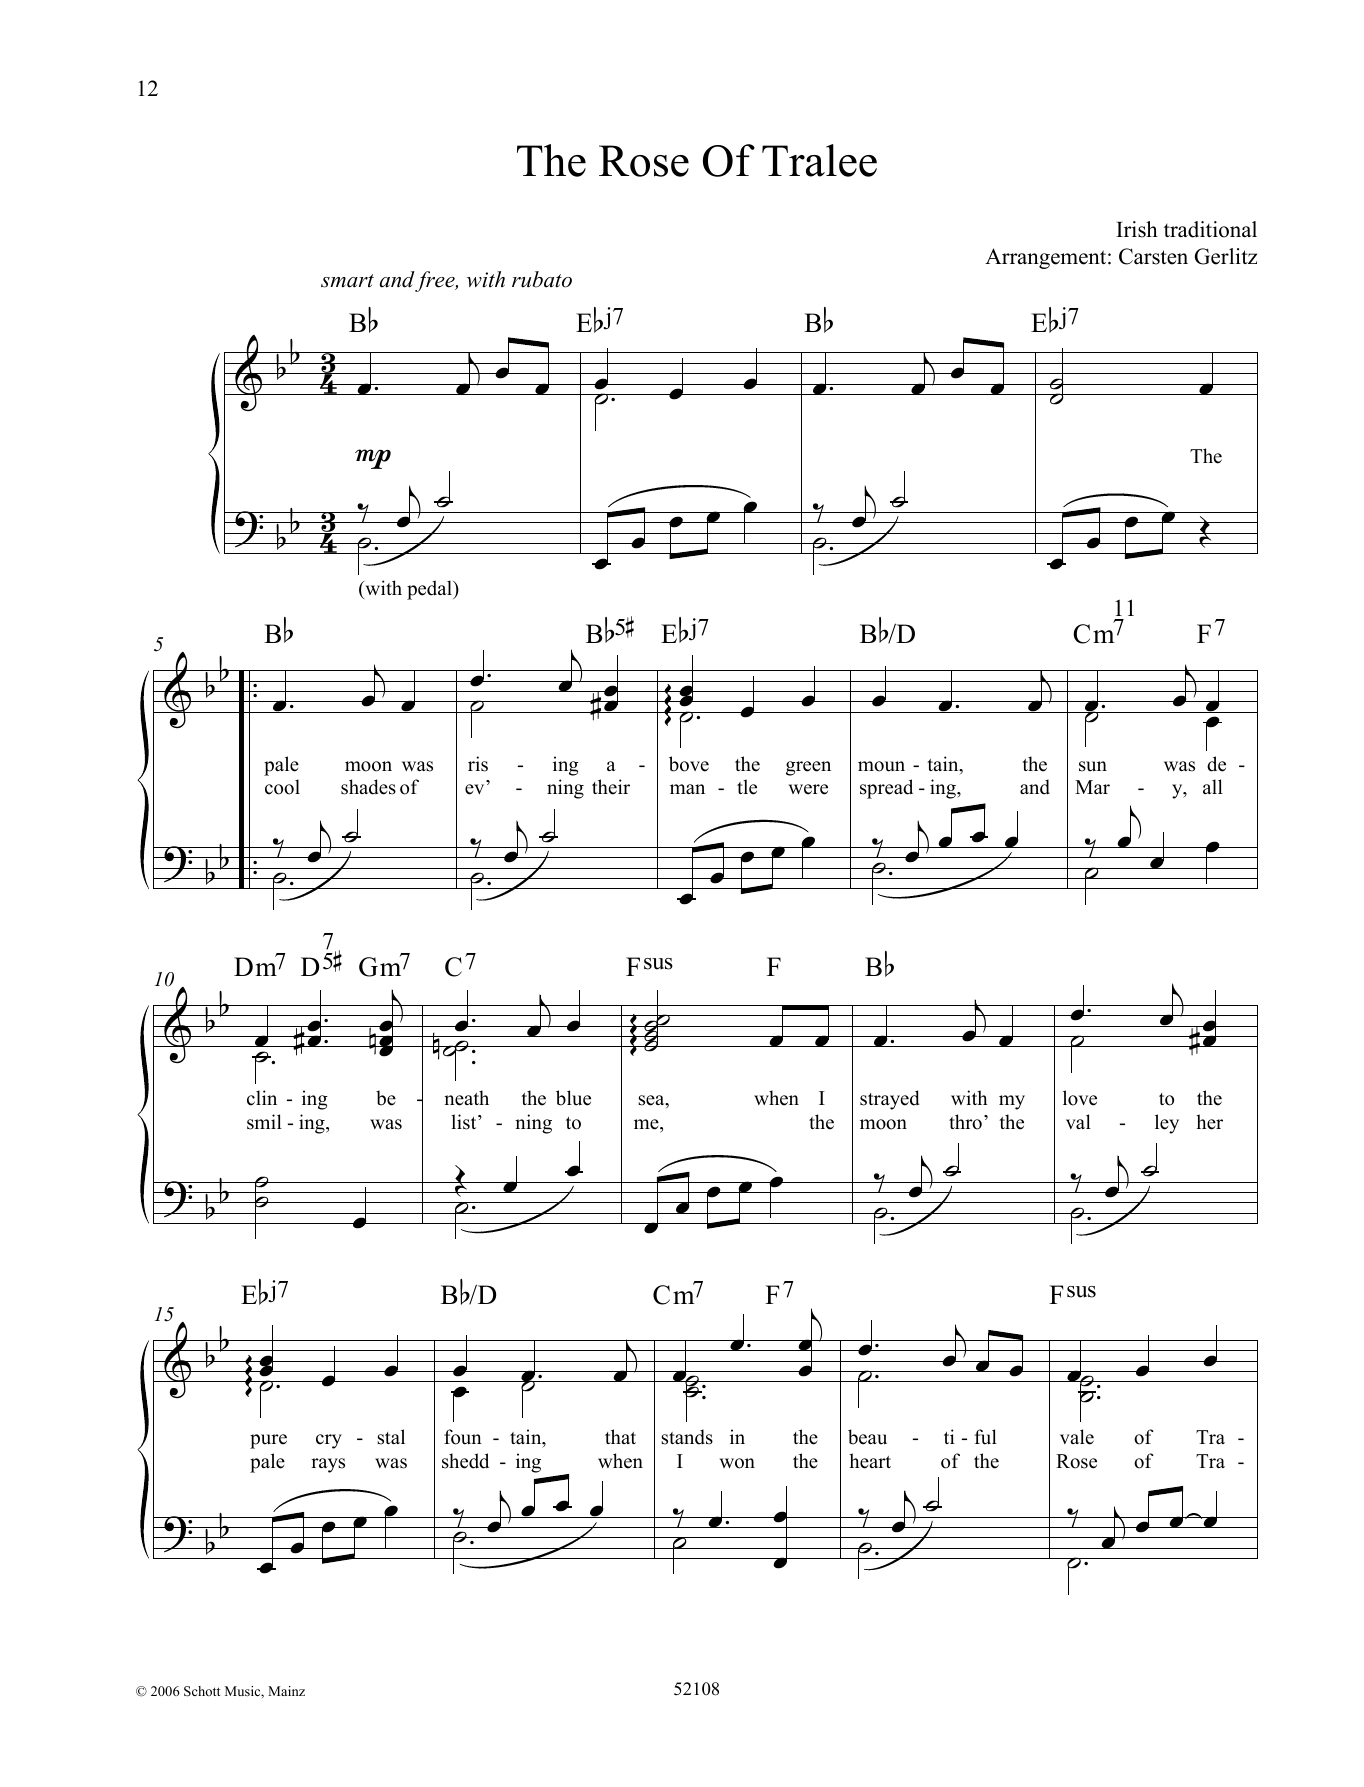 The Rose Of Tralee Sheet Music